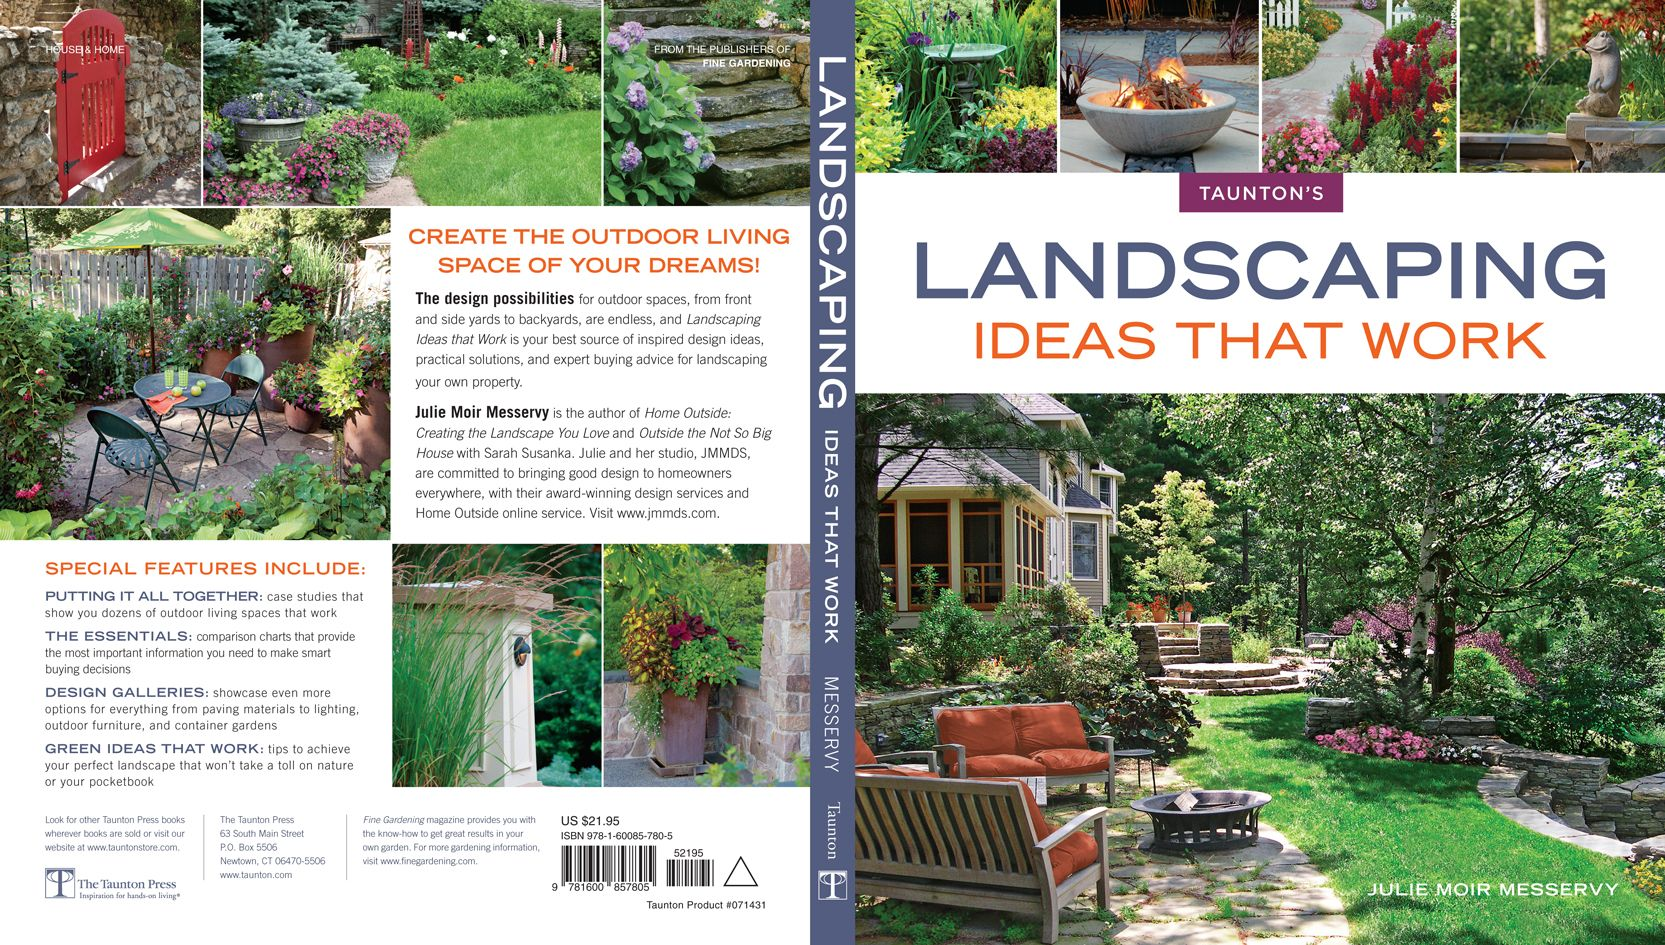 Landscaping Ideas That Work Dollhouse Bookcase Book And Magazine Nonfiction Books Mini